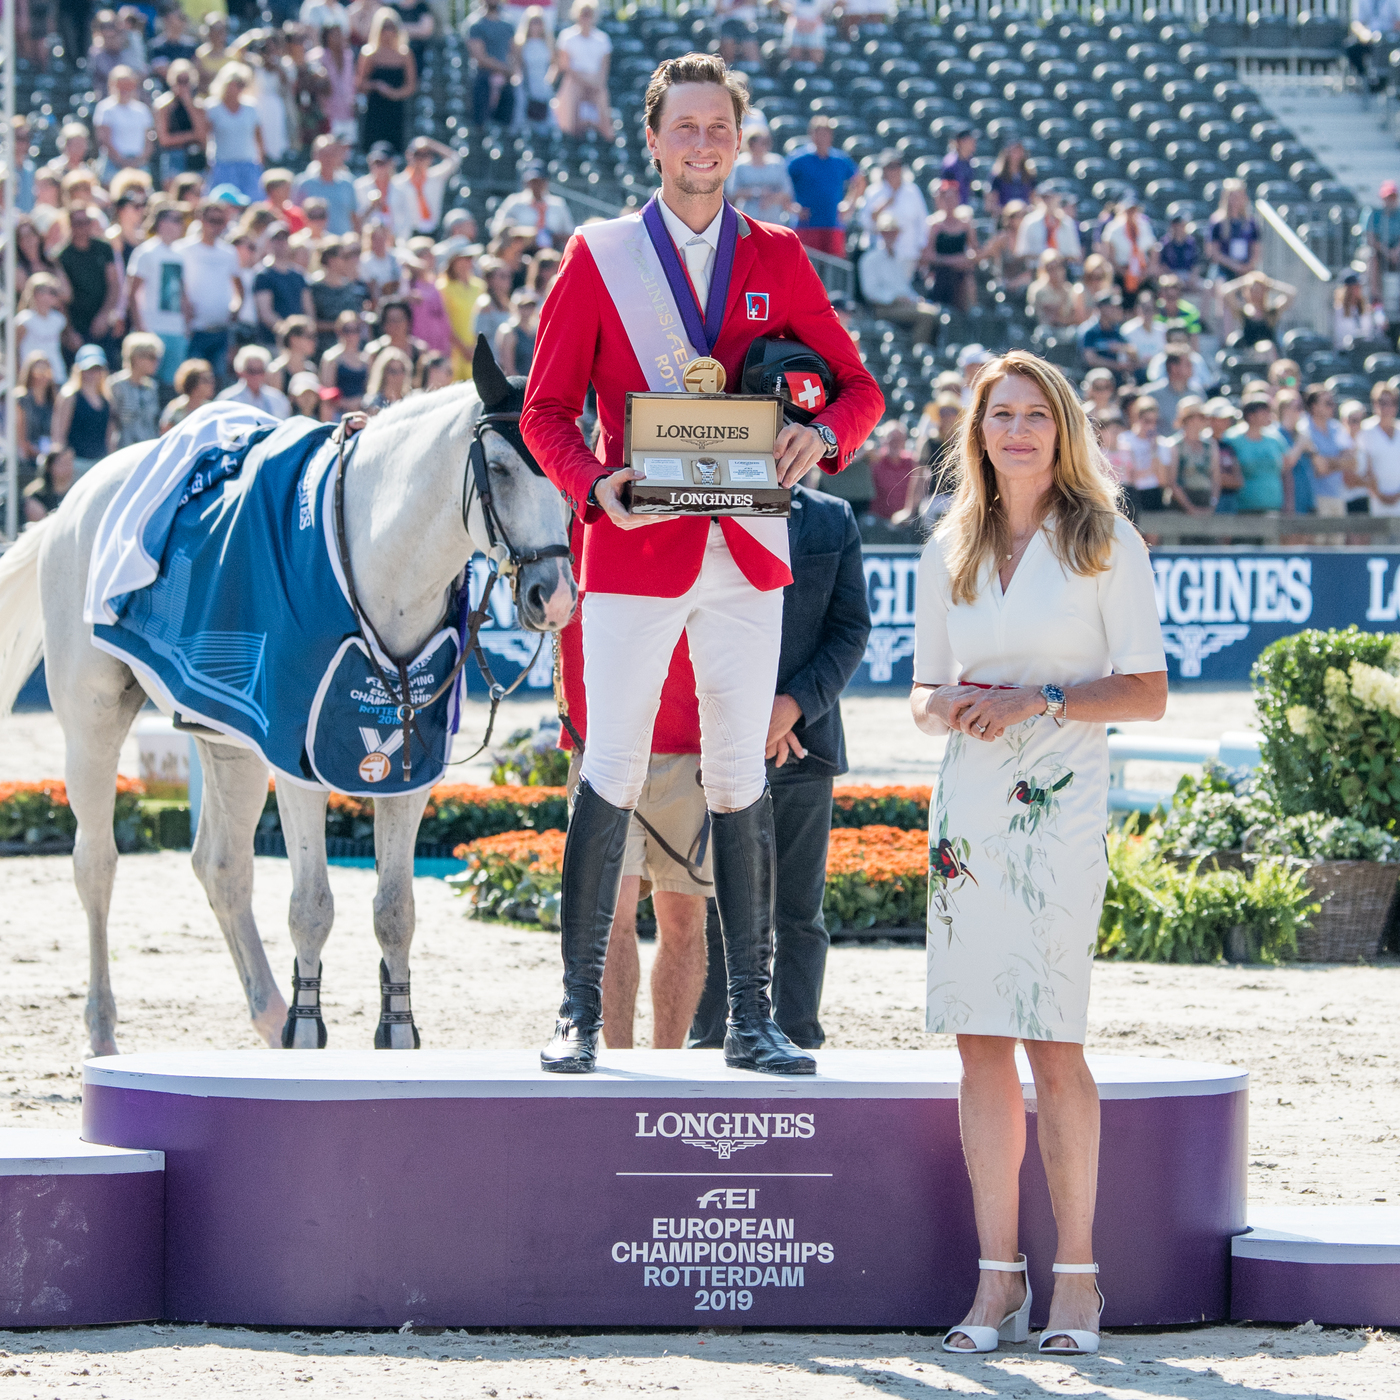 Longines Show Jumping Event: One week of captivating competitions and exceptional performances at the Longines FEI European Championships 2019 14